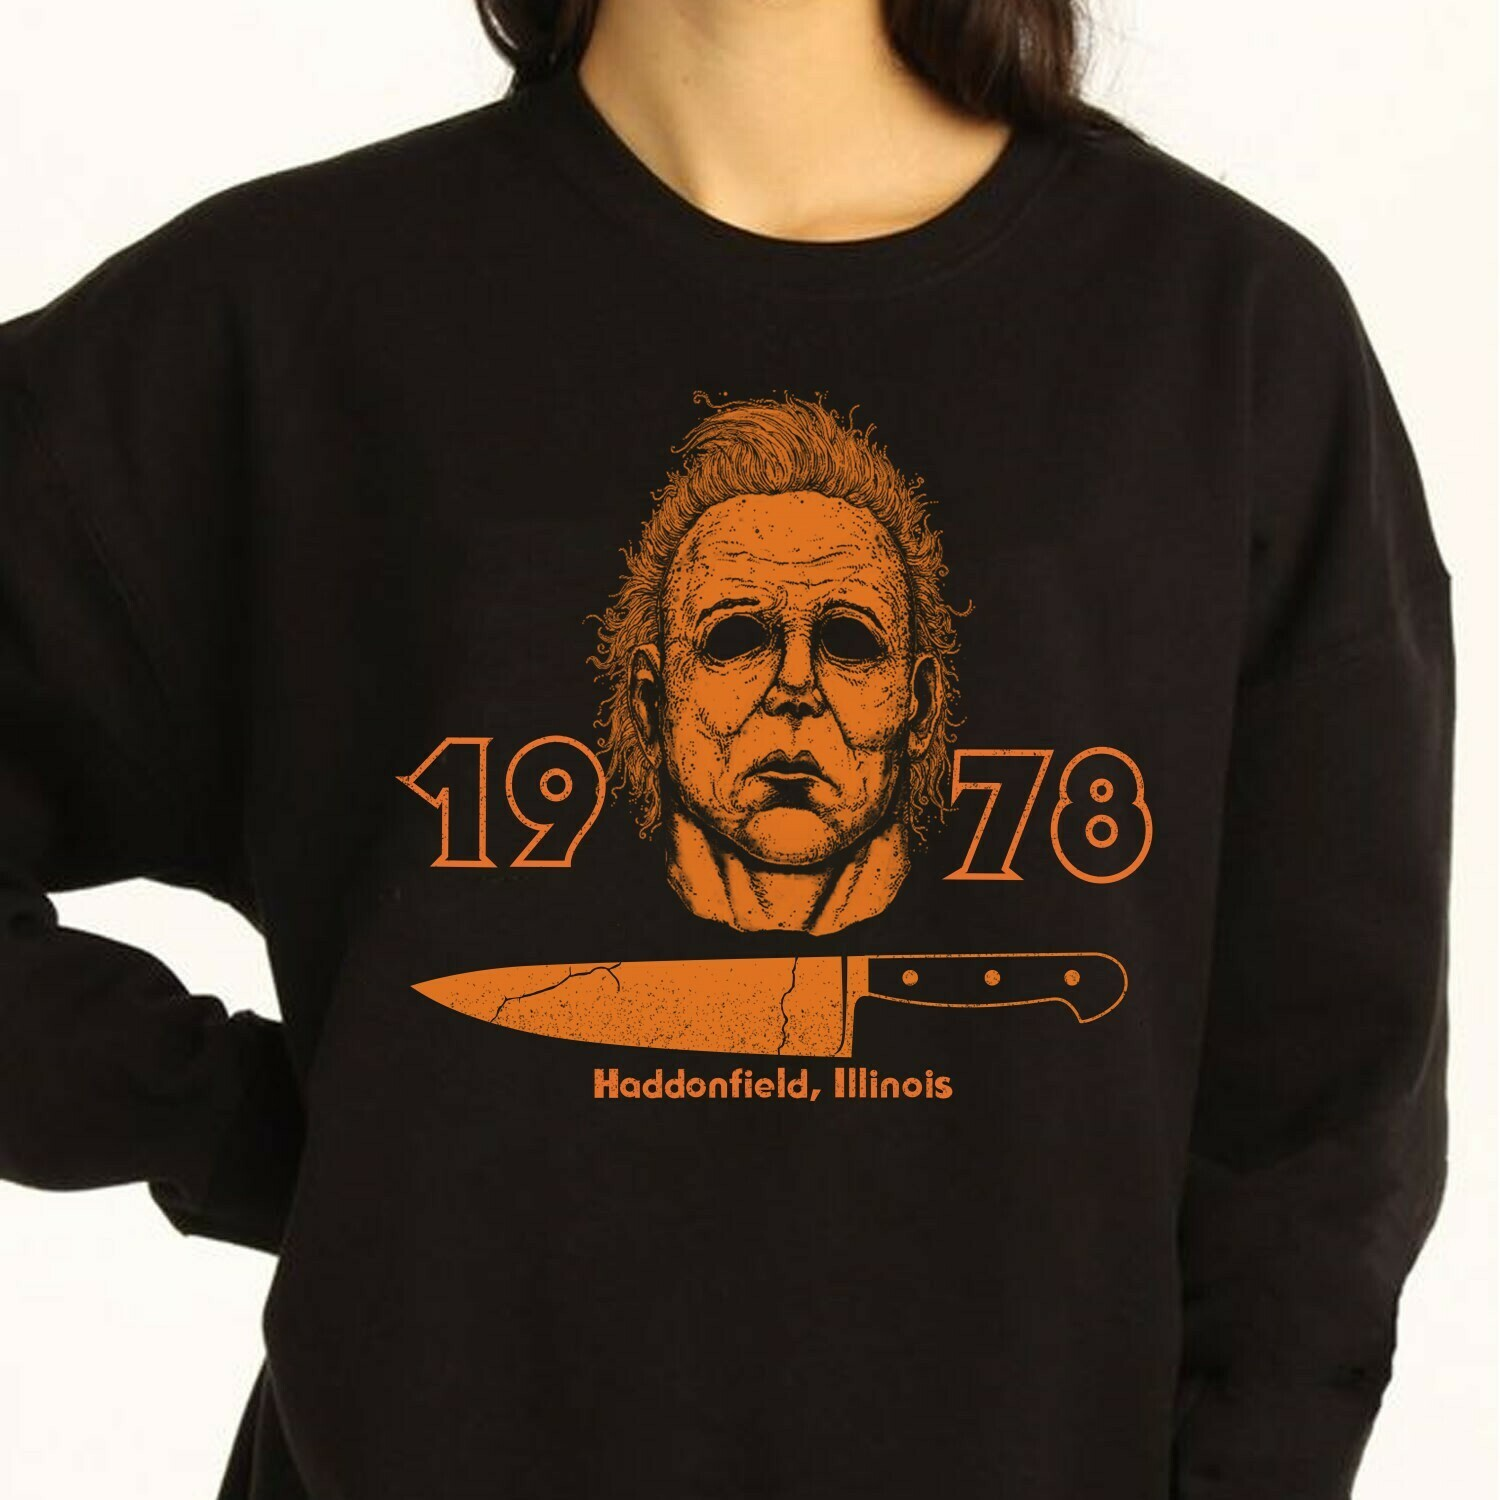 Michael Myers 1978 Haddonfield, Illinois Halloween Gifts For Fan Movie Villains Halloween Horror Movie Mashup Squad Not So Scary T-Shirt Long Sleeve Sweatshirt Hoodie Jolly Family Gifts